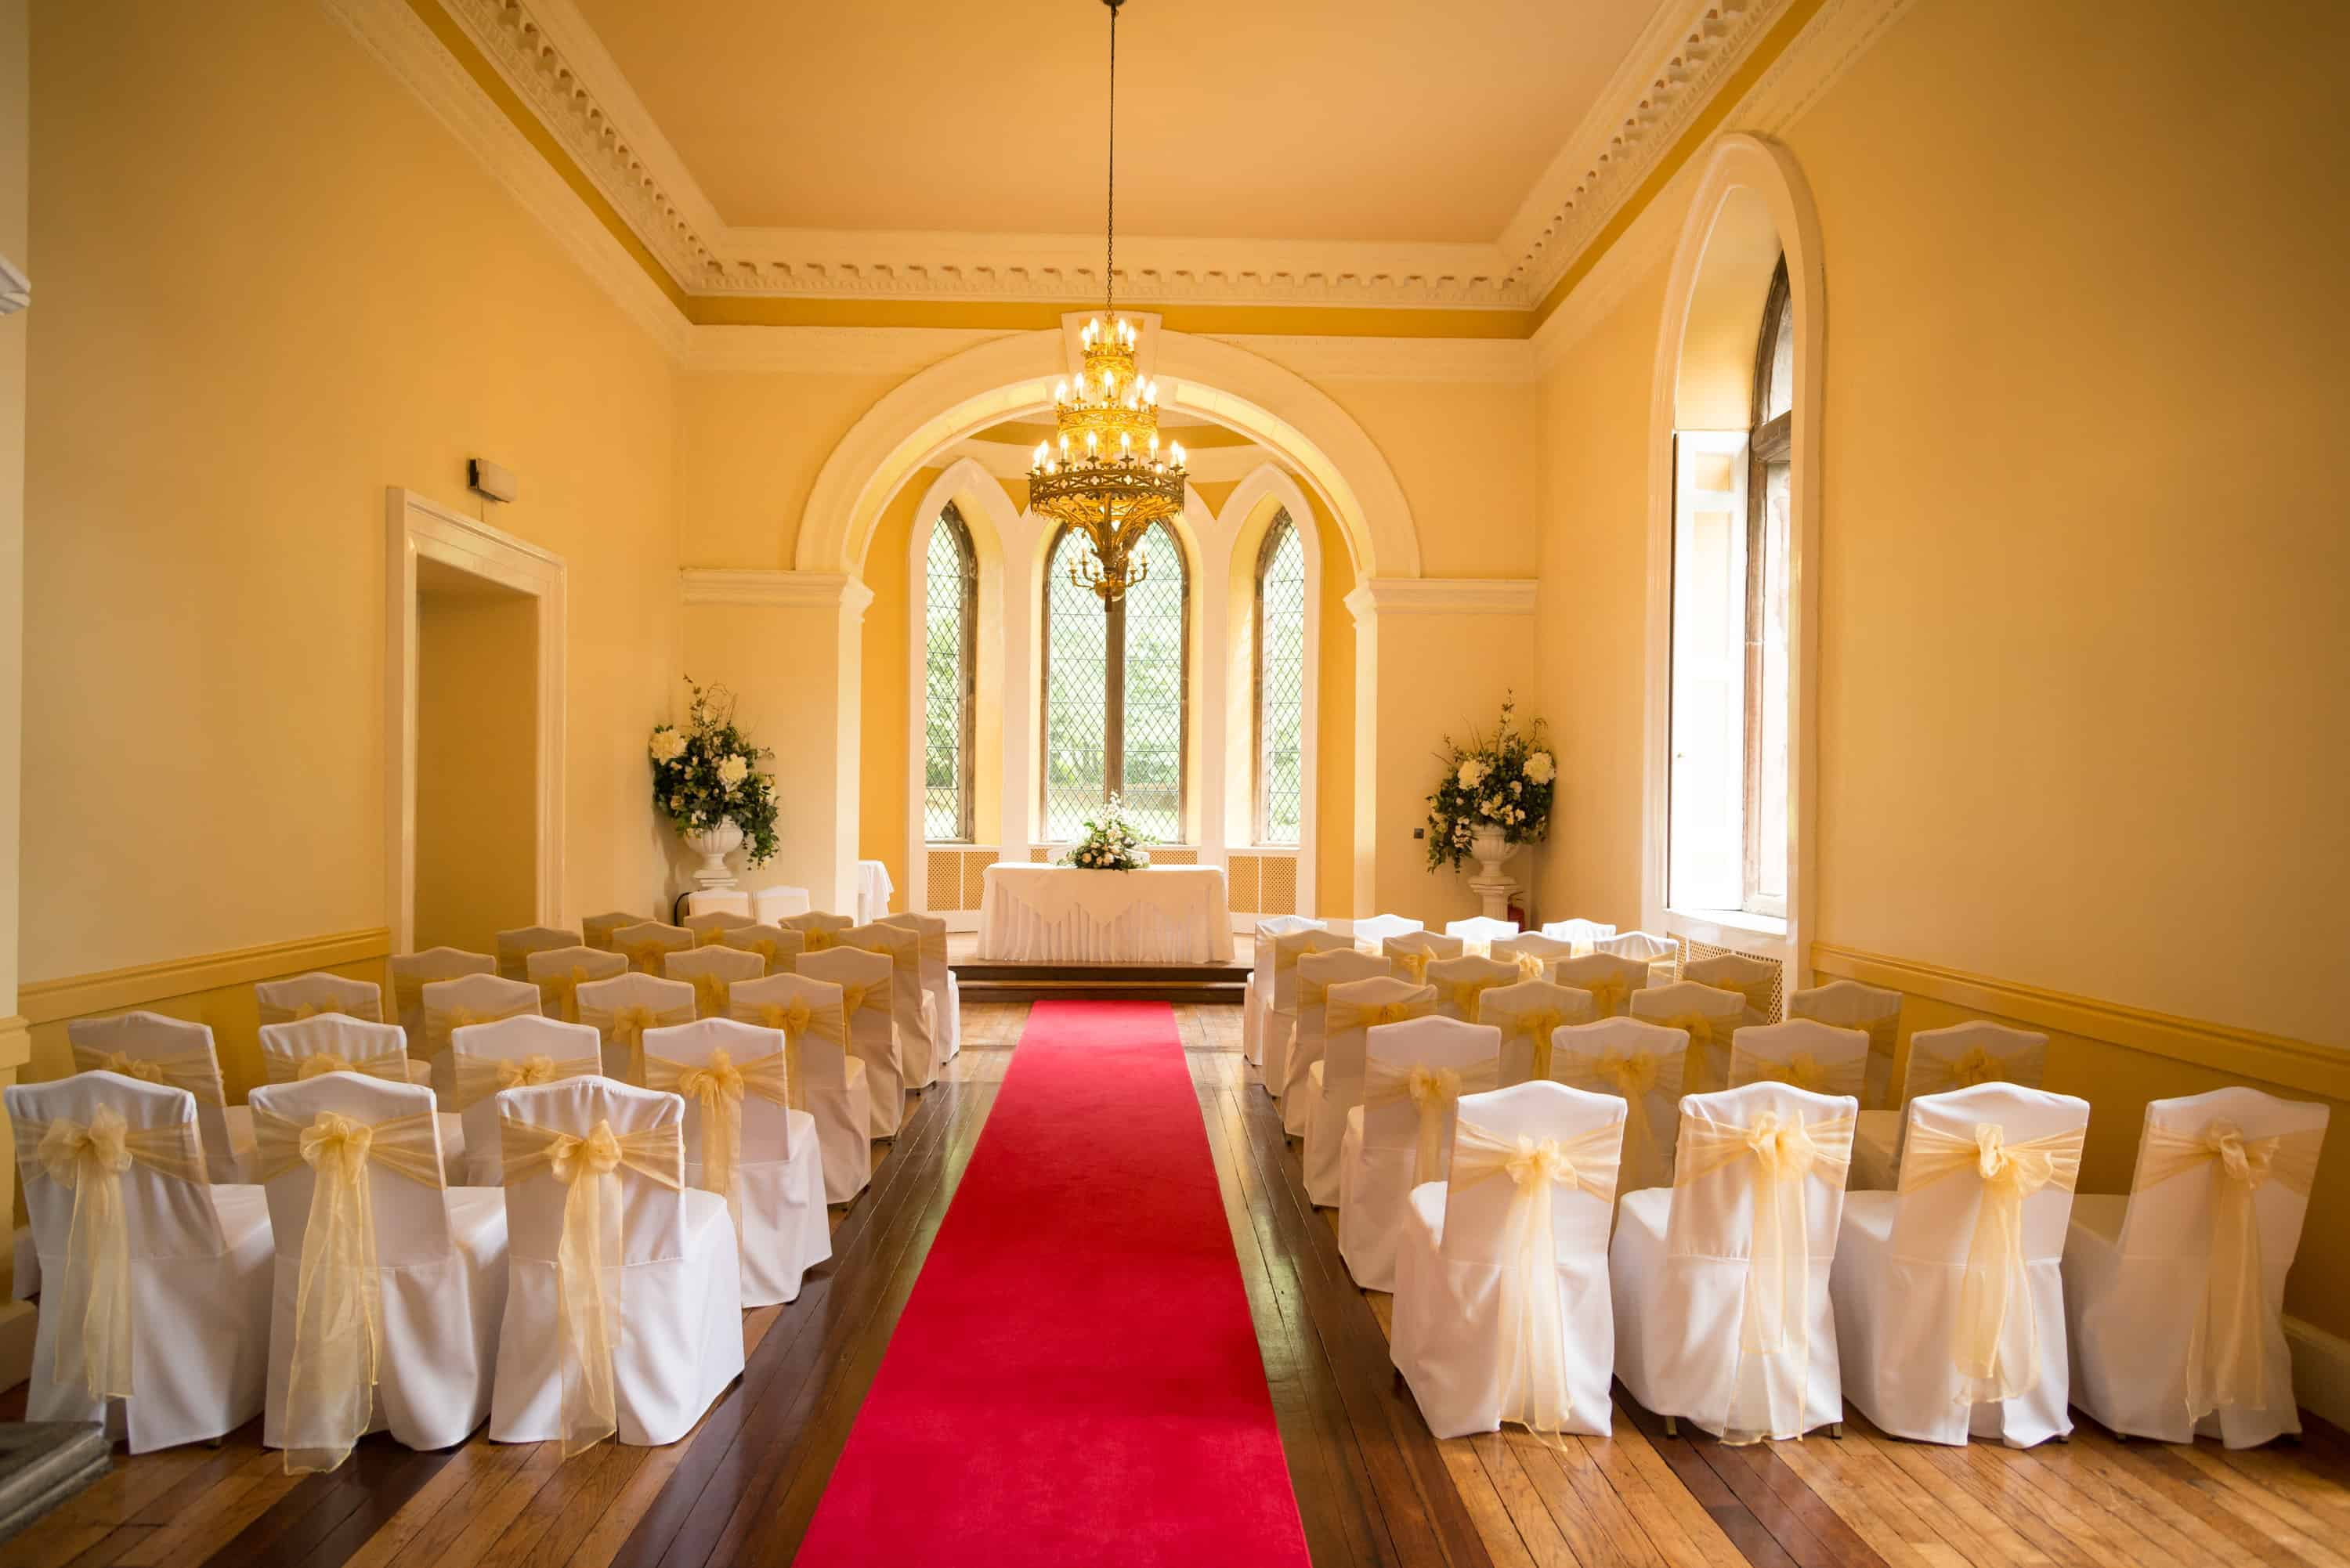 Clearwell Castle - Ceremony Room